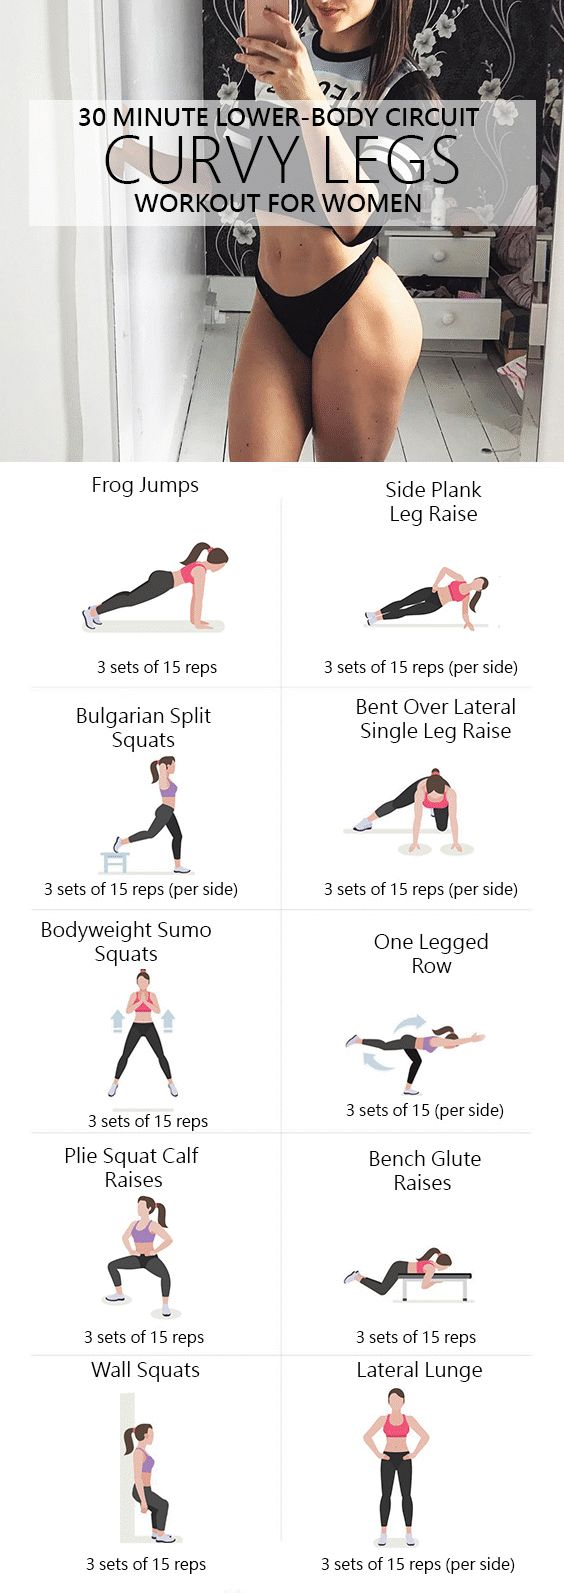 #person trainer 10 Best Strength Training Exercises for Women workout